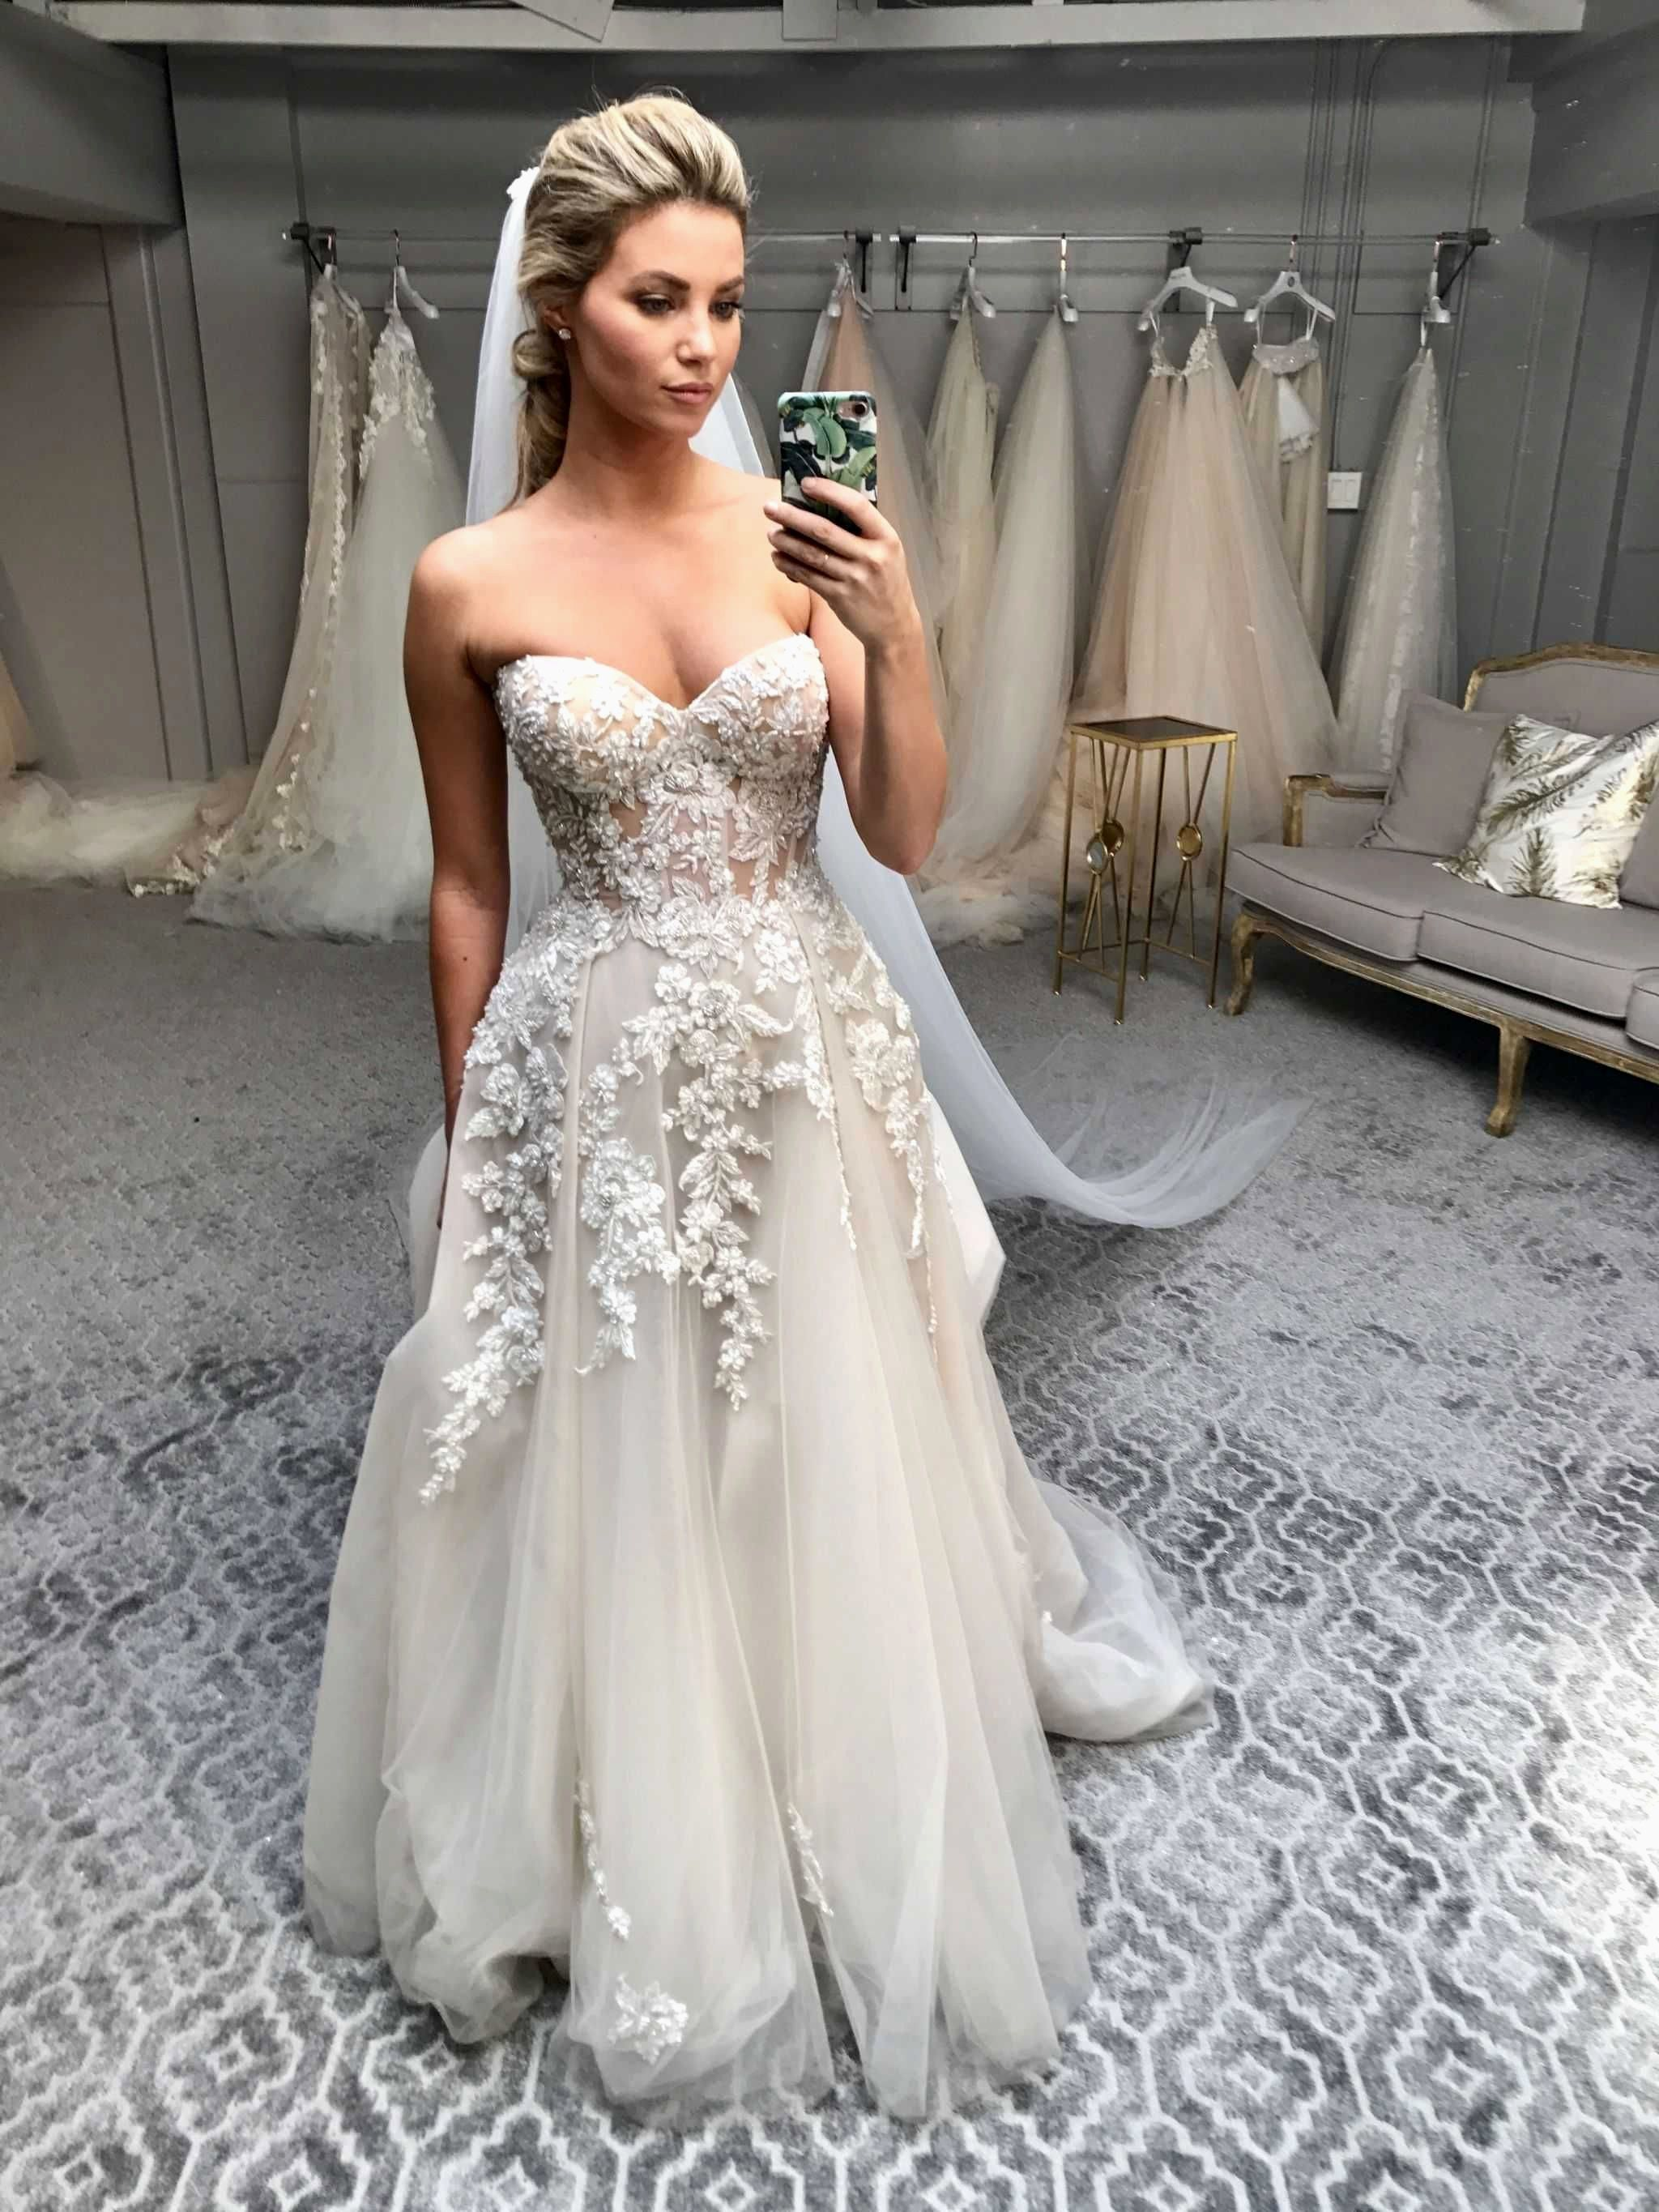 Vera Wang Princess Wedding Dress Luxury Where To Donate Wedding Gowns Luxury Great Cold Shou Backyard Wedding Dresses Wedding Dresses Vera Wang Wedding Dresses